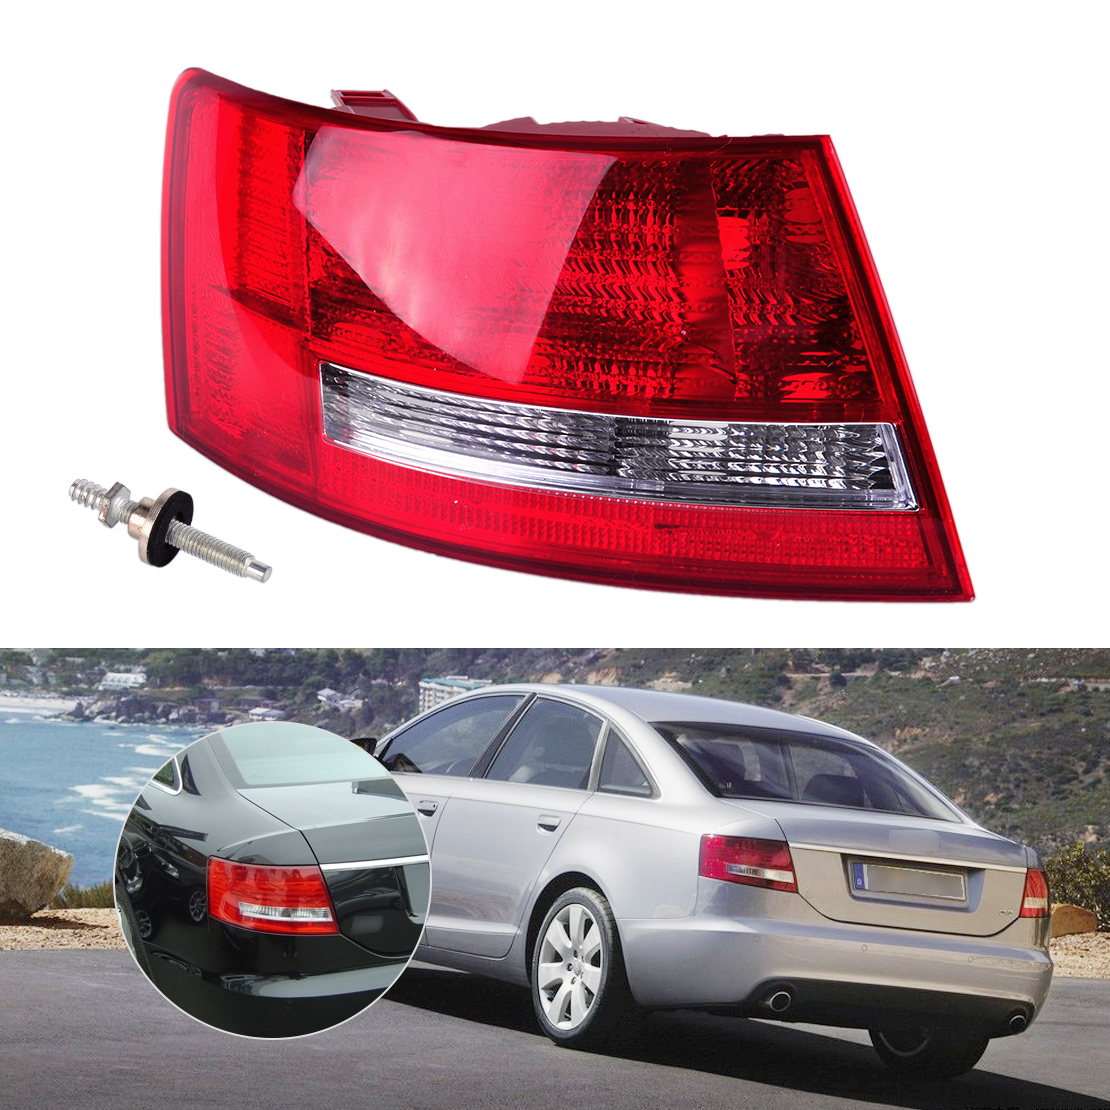 DWCX Rear Tail Left Light Taillight Assembly Lamp Housing without Bulb 4F5 945 095 L for Audi A6 /A6 Quattro Sedan 2005 2006 -08 diy tt motor for robot intelligent car yellow